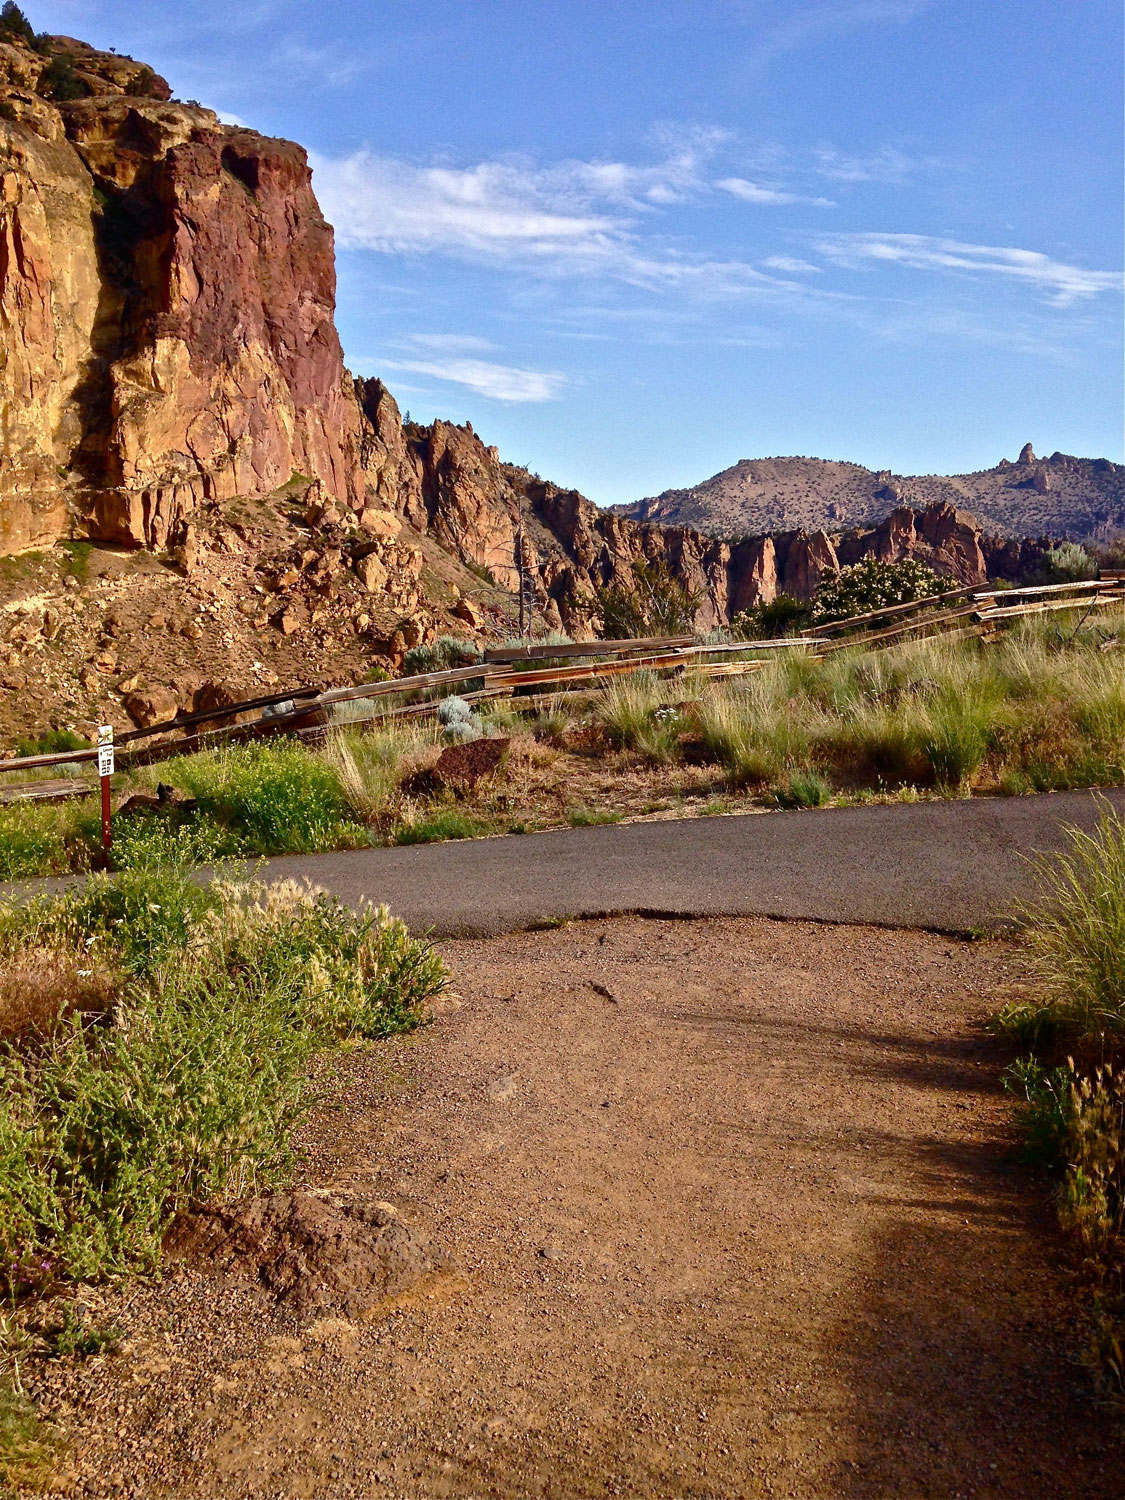 Start of the Rim Rock Trail from the Overlook at Smith Rock State Park.